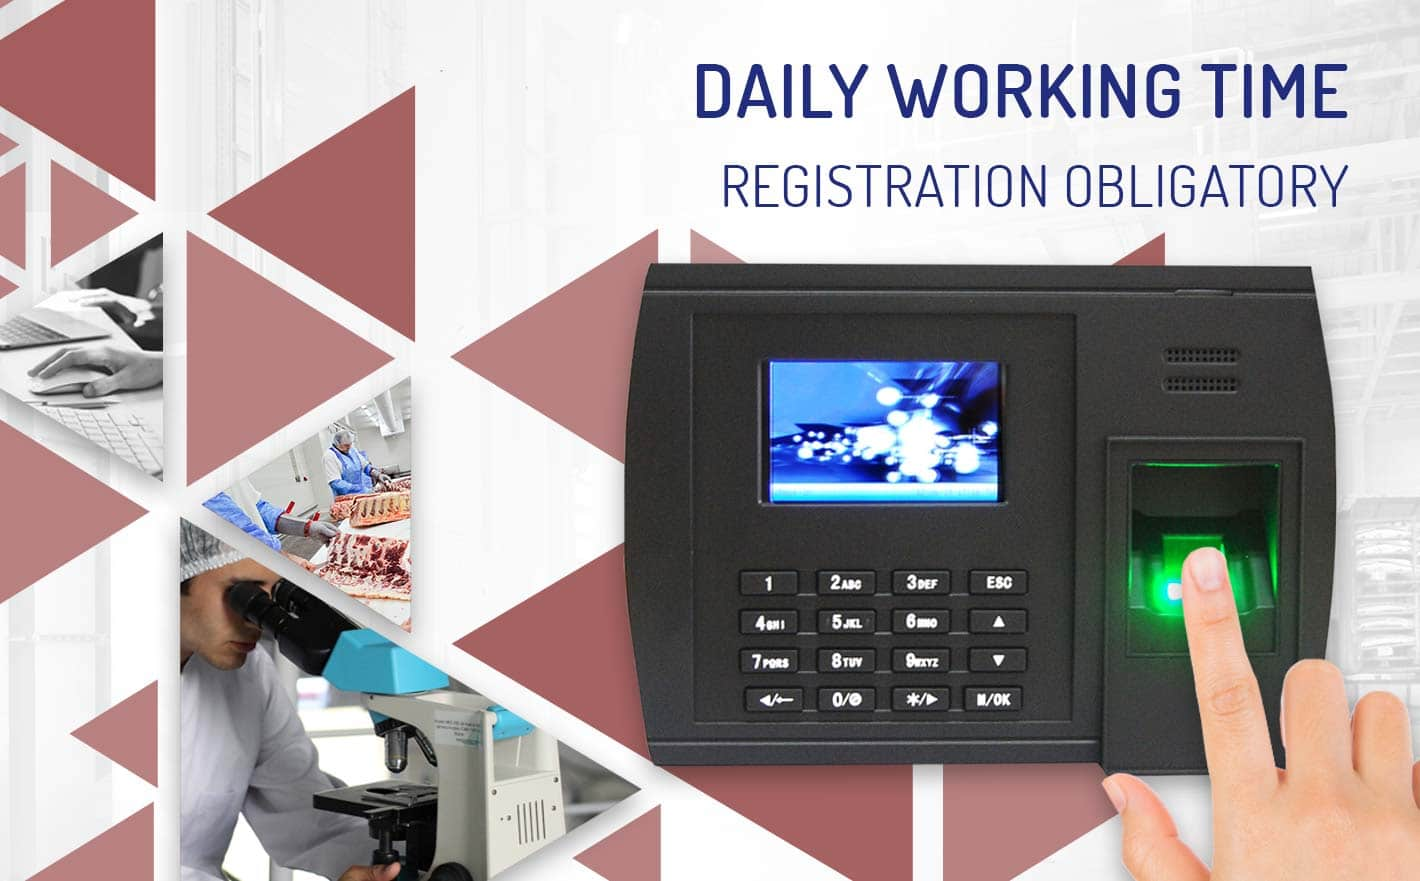 Labor working day registration obligatory | Reysan